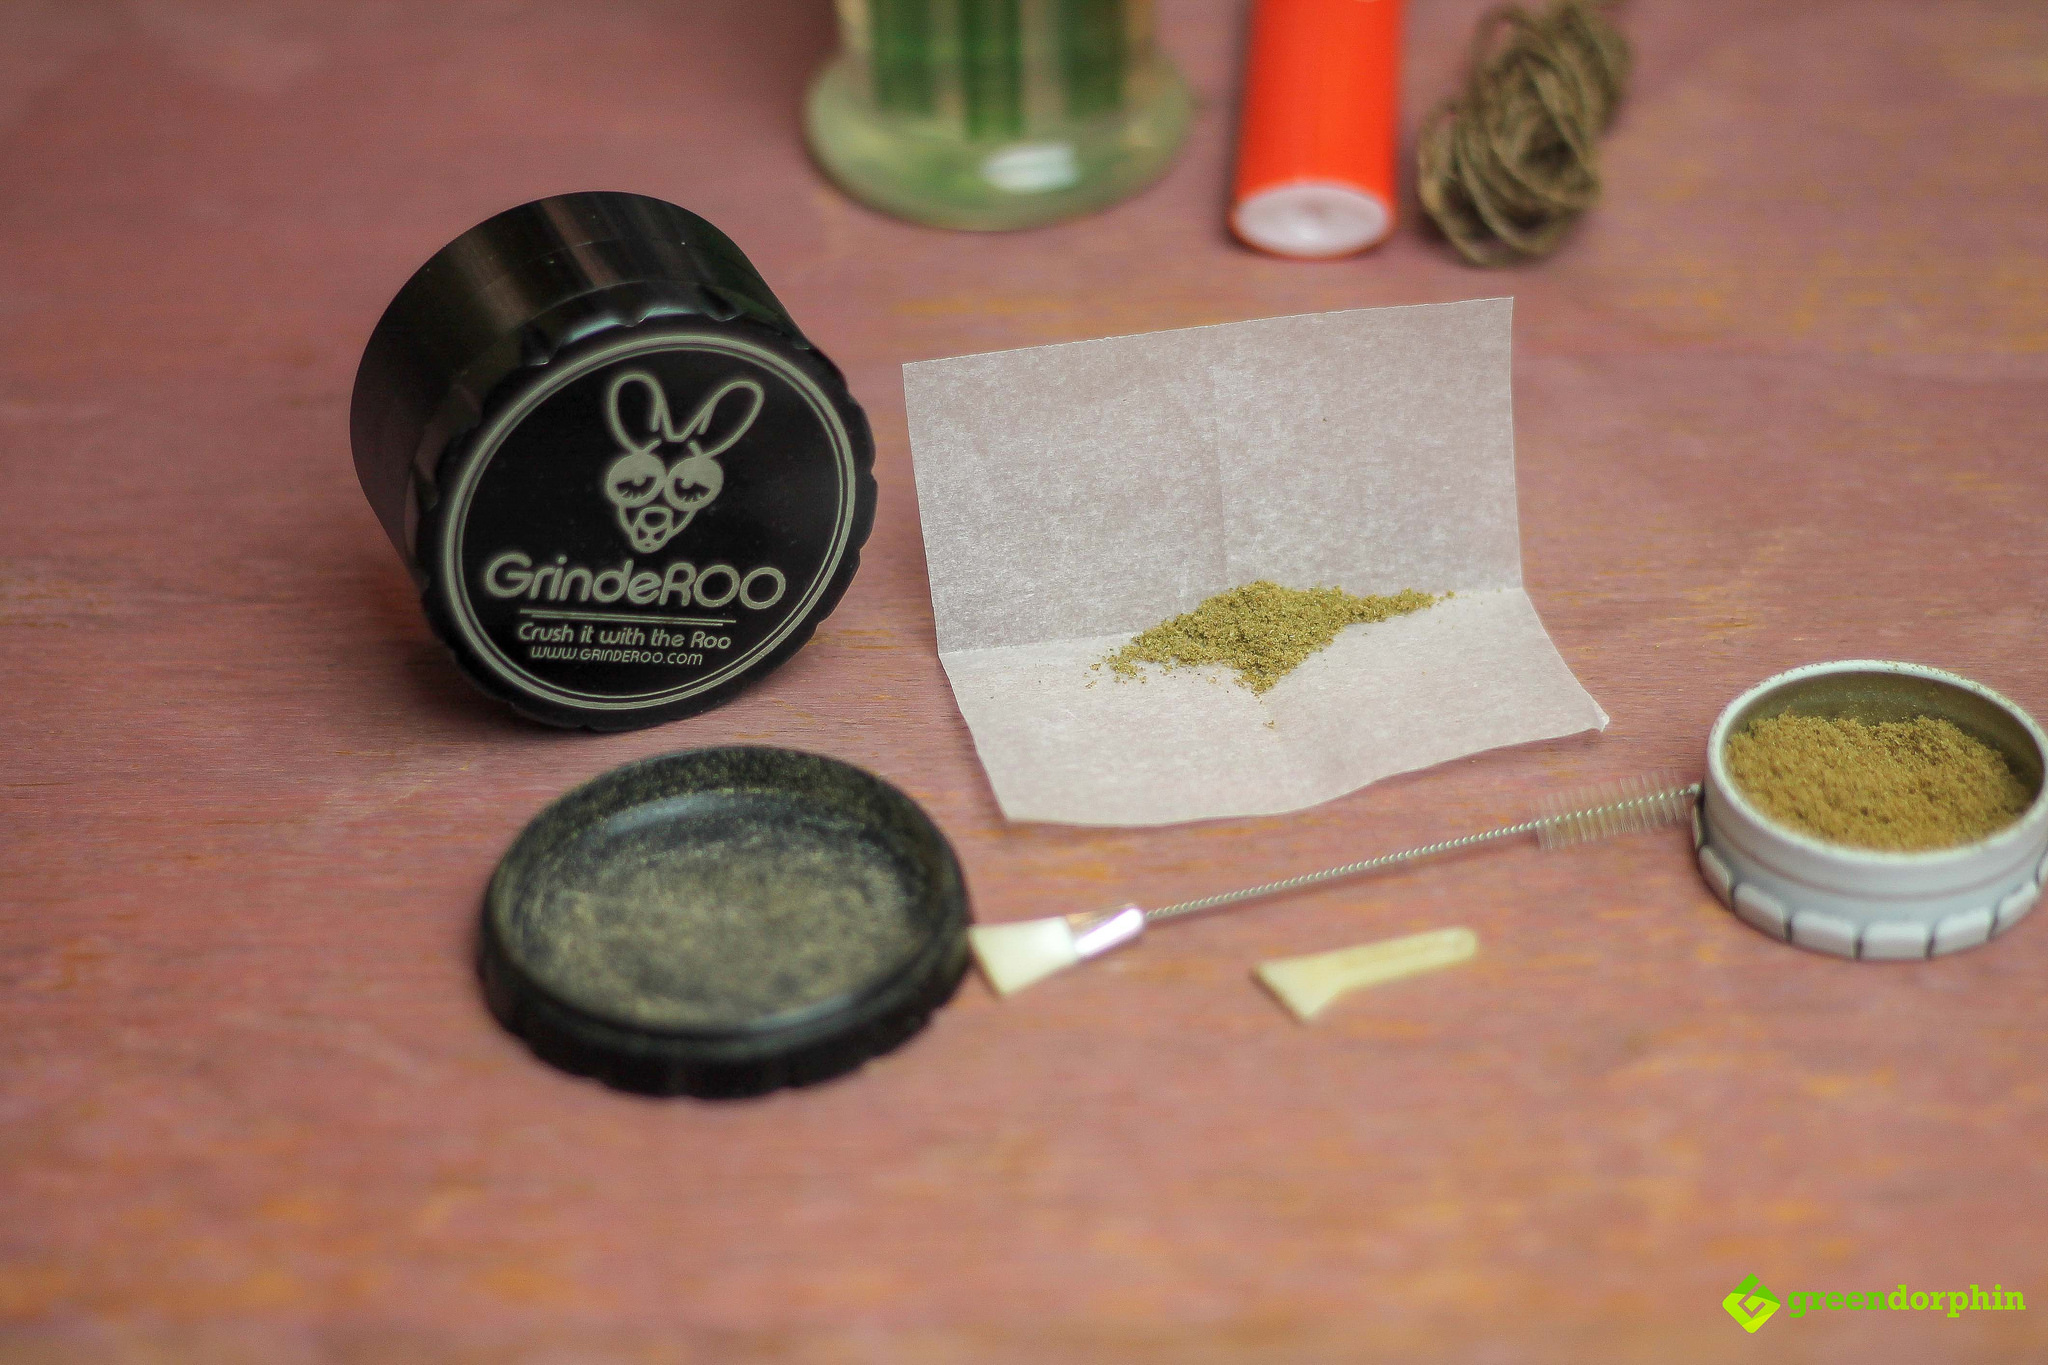 turn your kief into hash grinderoo